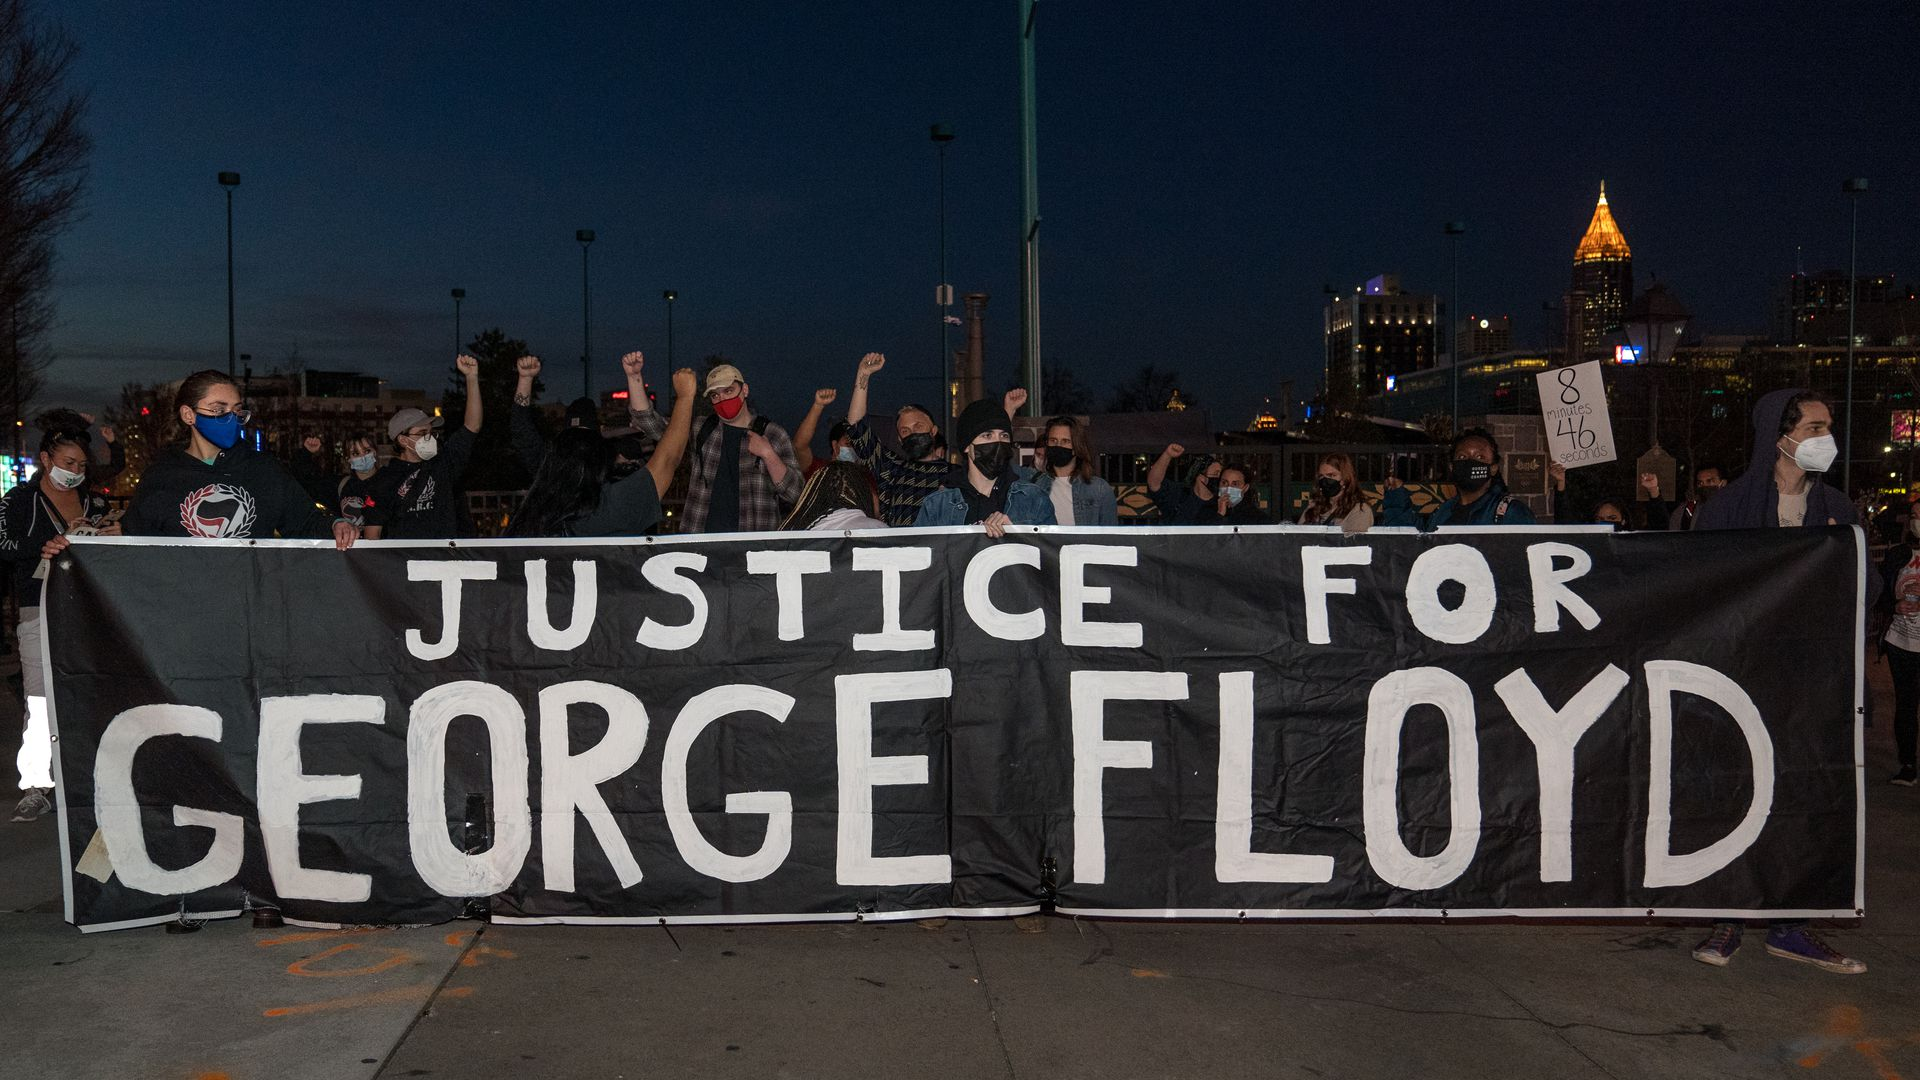 Justice for George Floyd sign